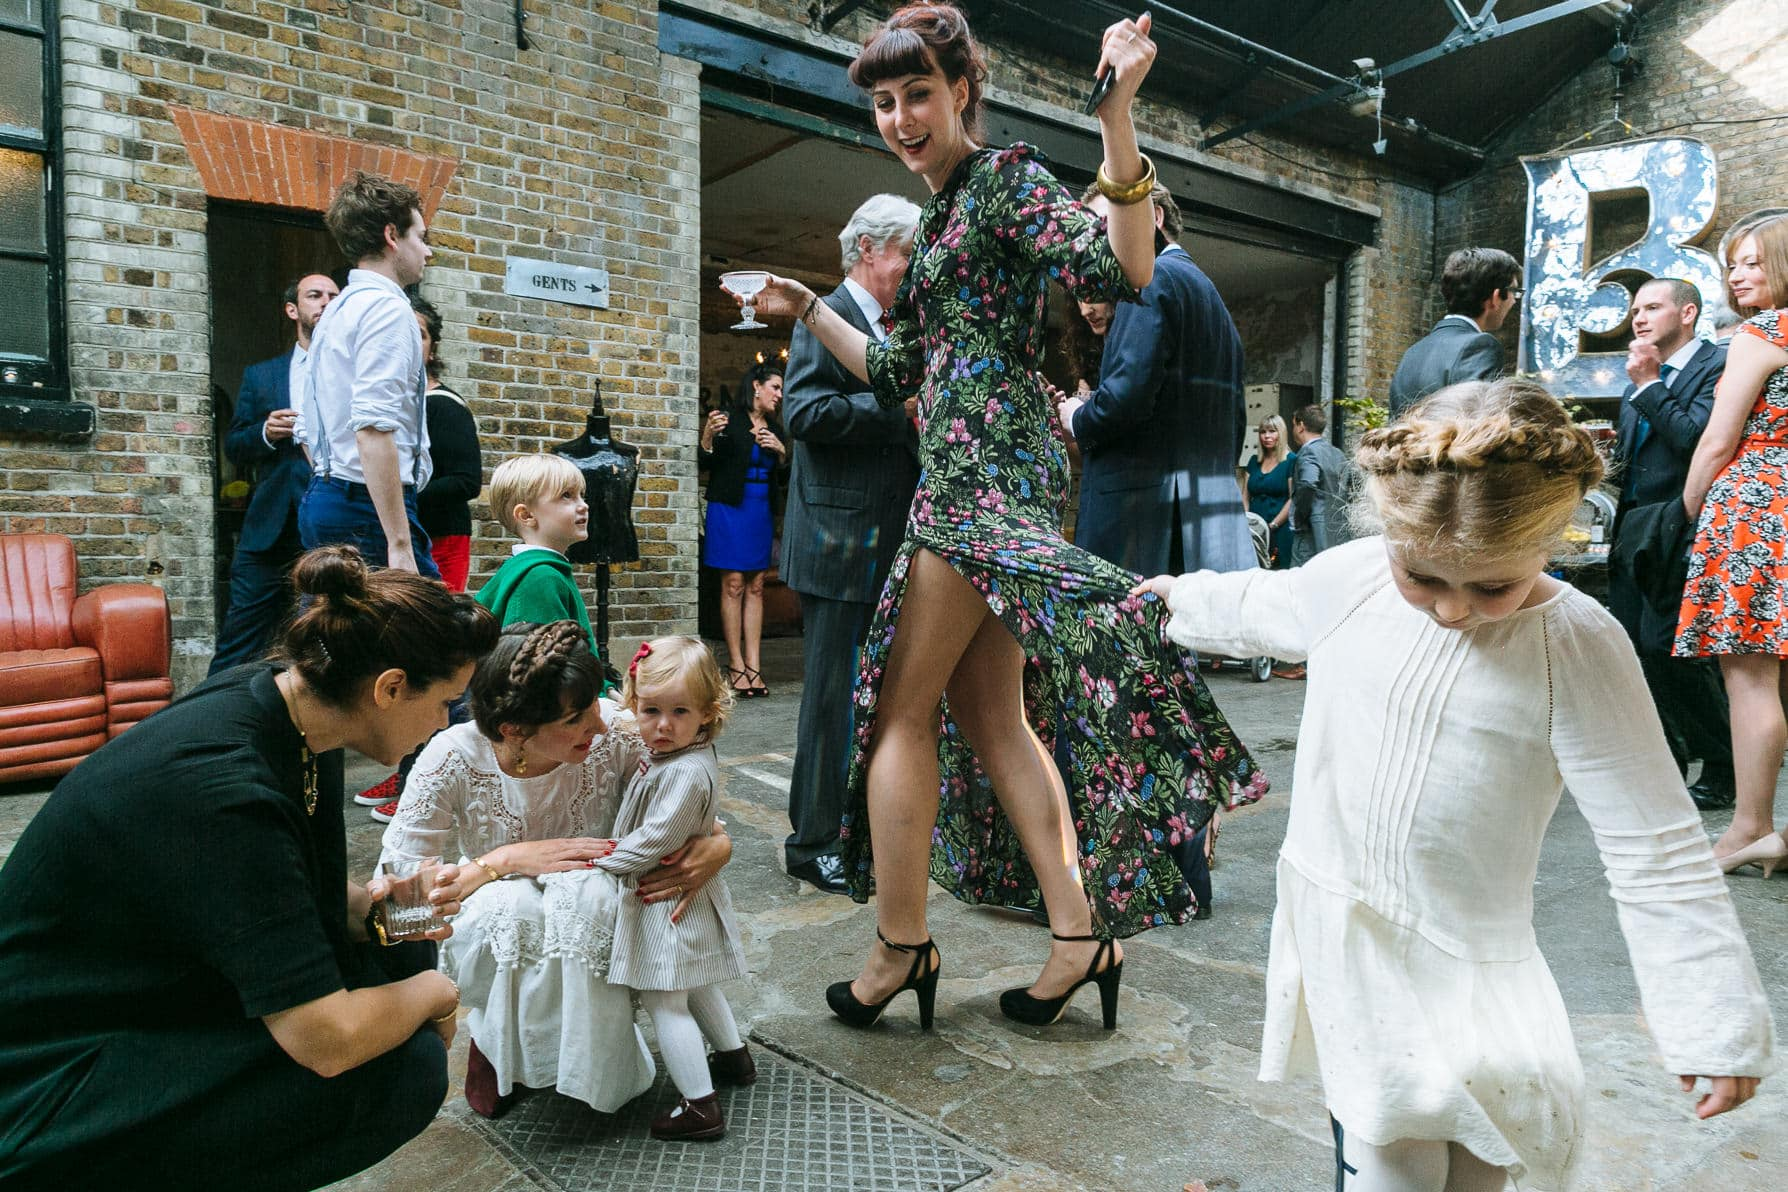 Friday Photo: A Beautiful Commotion